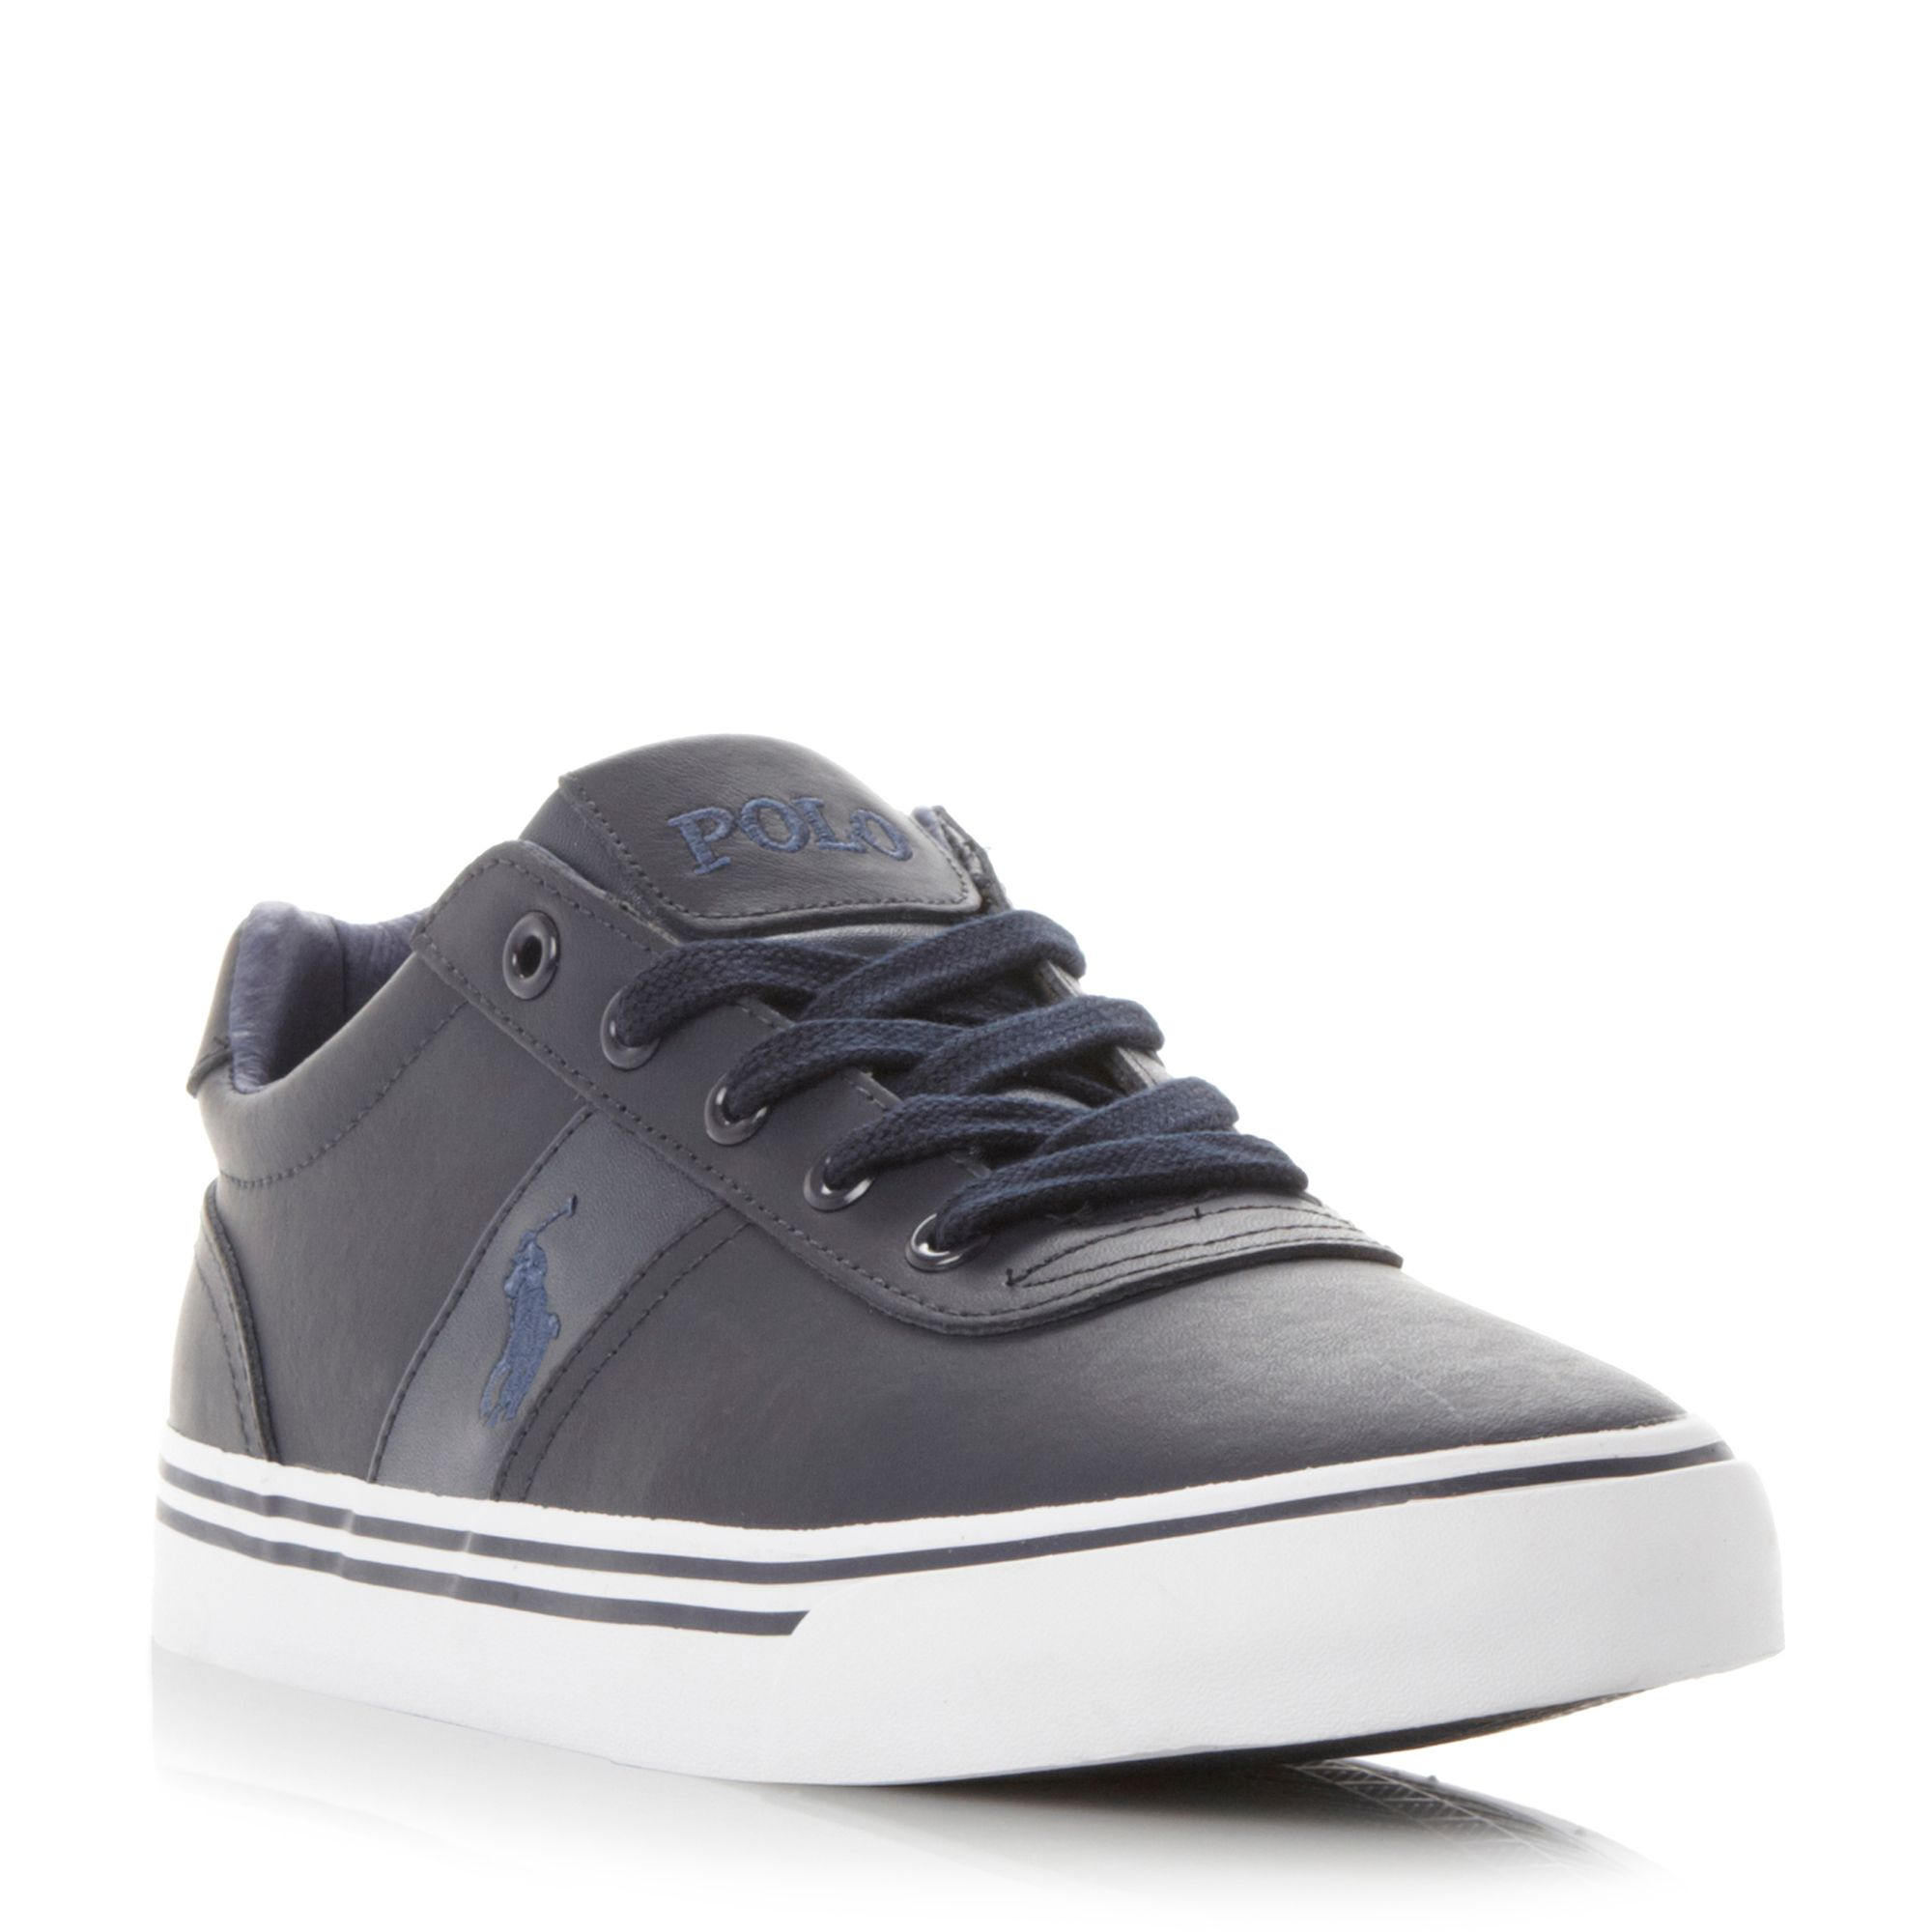 Best selling Polo Ralph Lauren Hanford Leather Trainers R25y6018